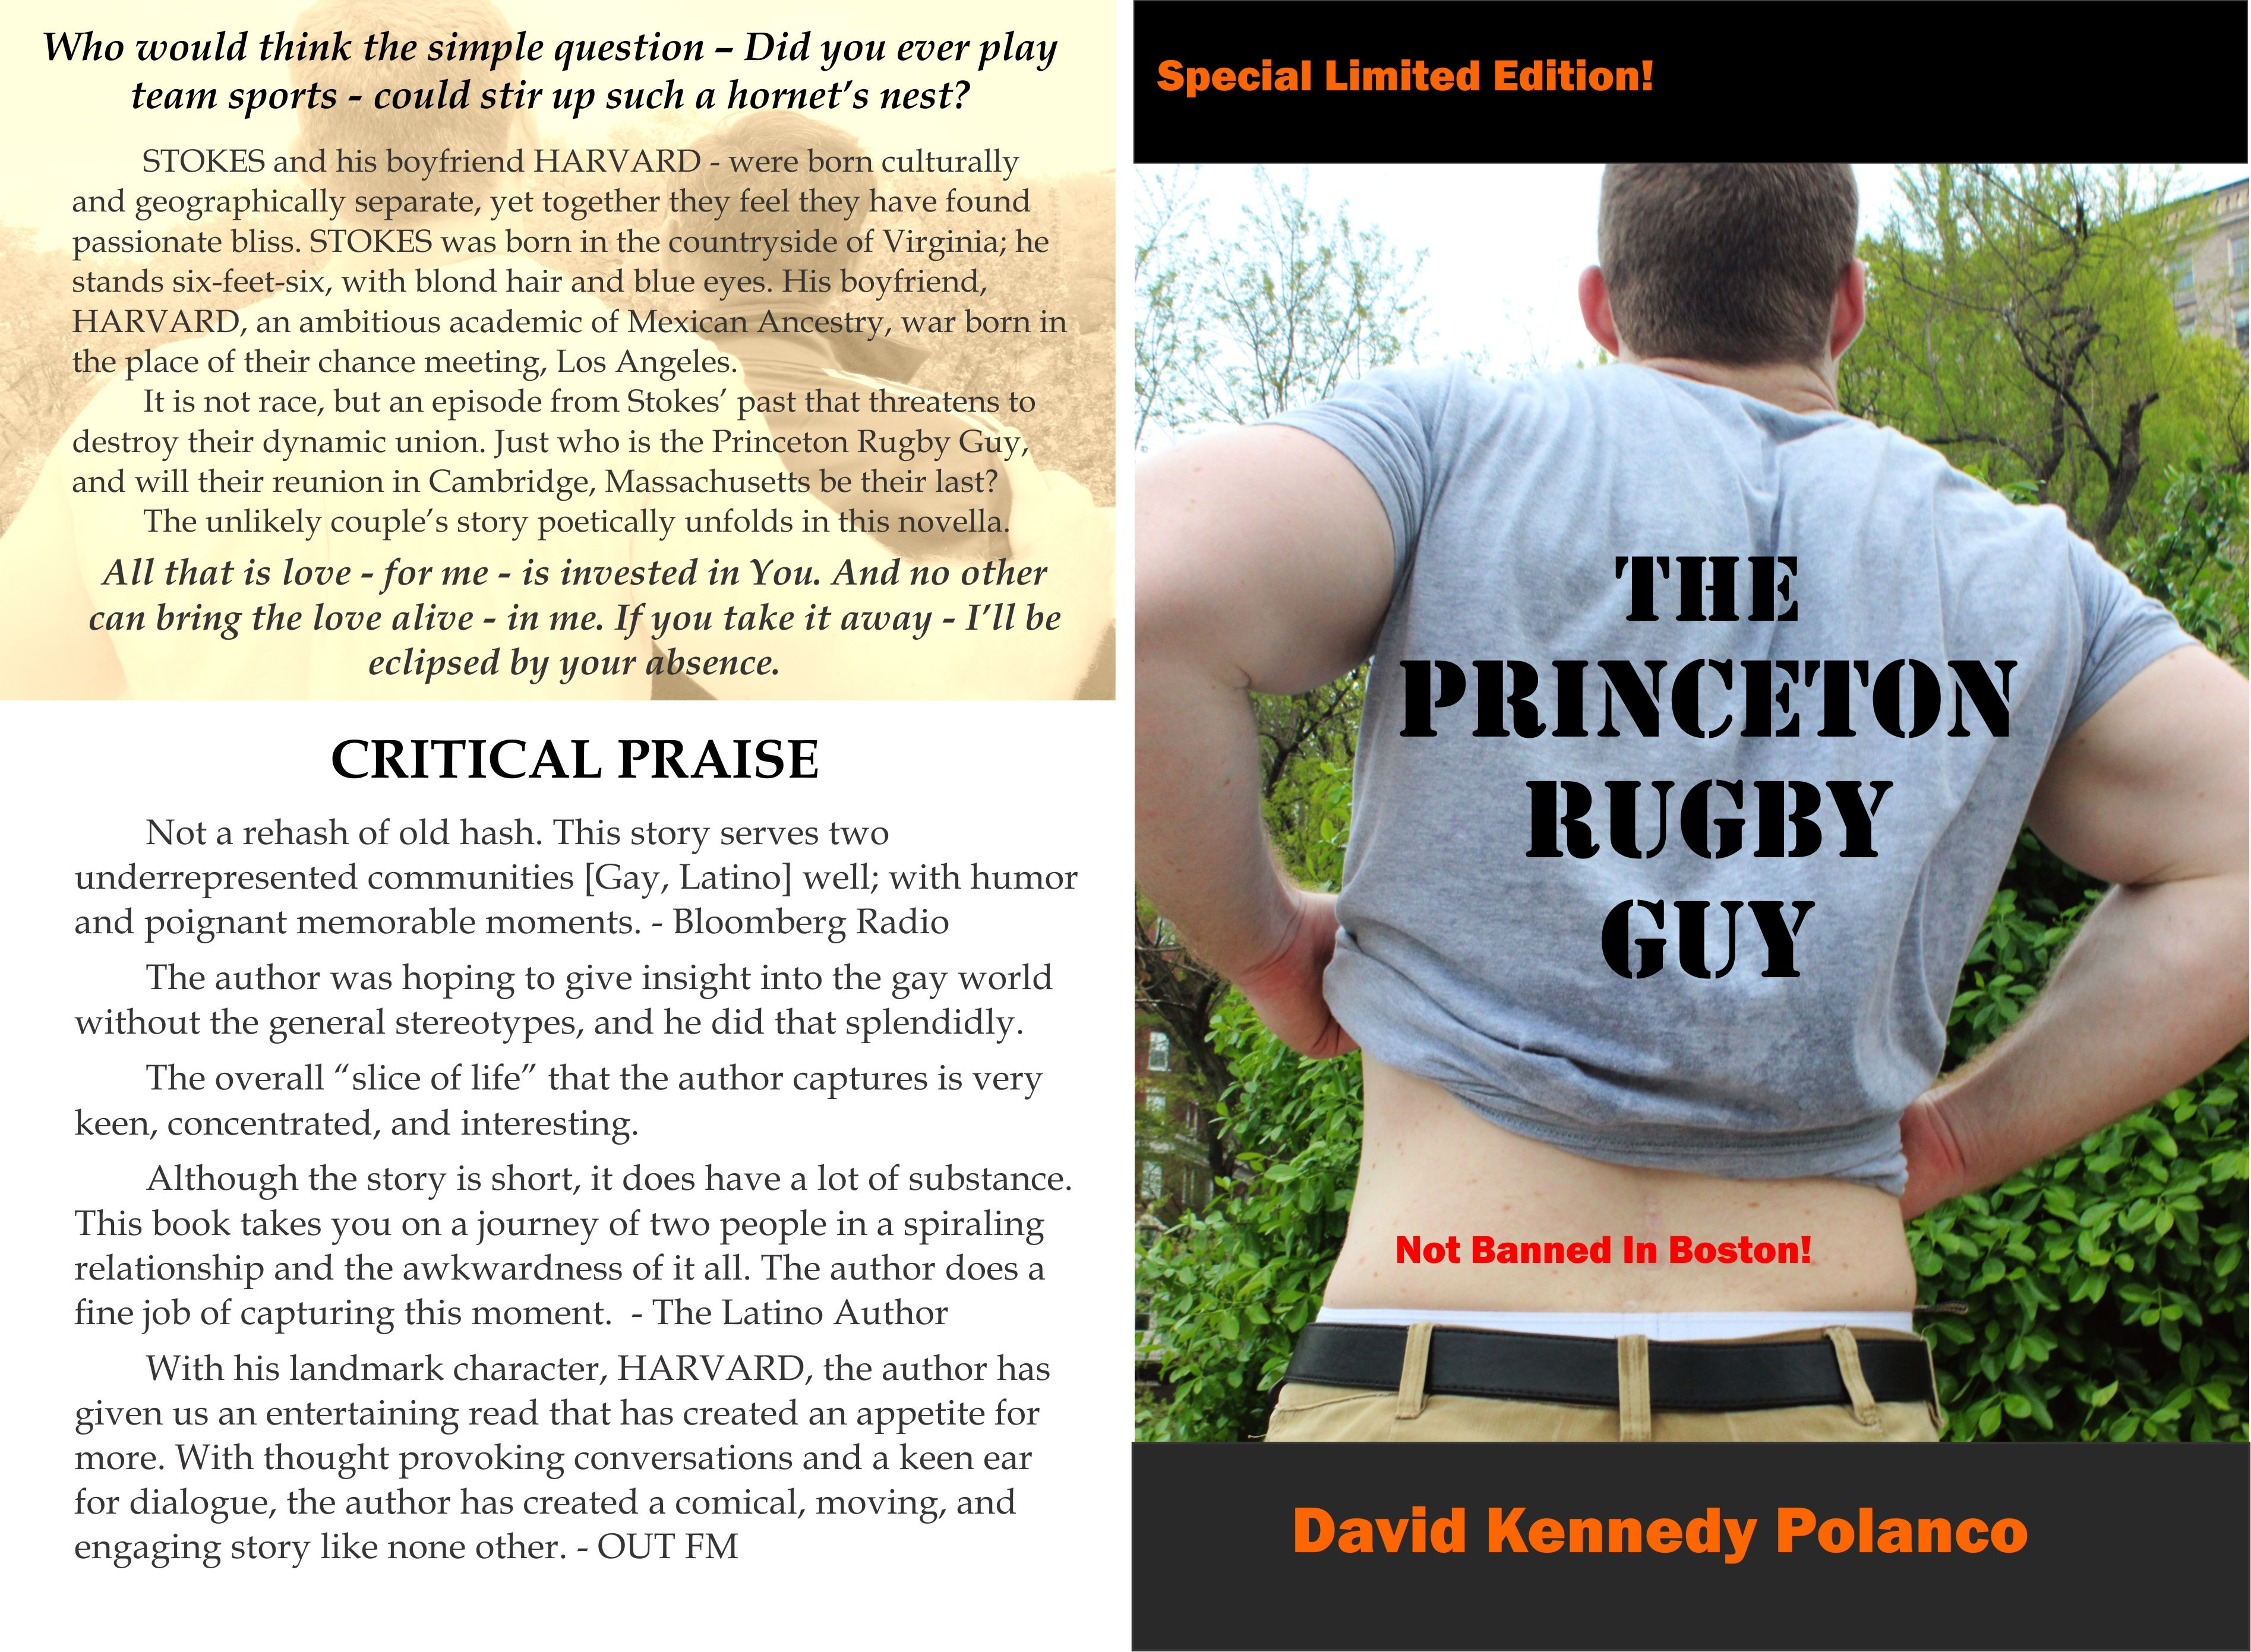 The Princeton Rugby Guy Hornets Nest Tank Man This Or That Questions